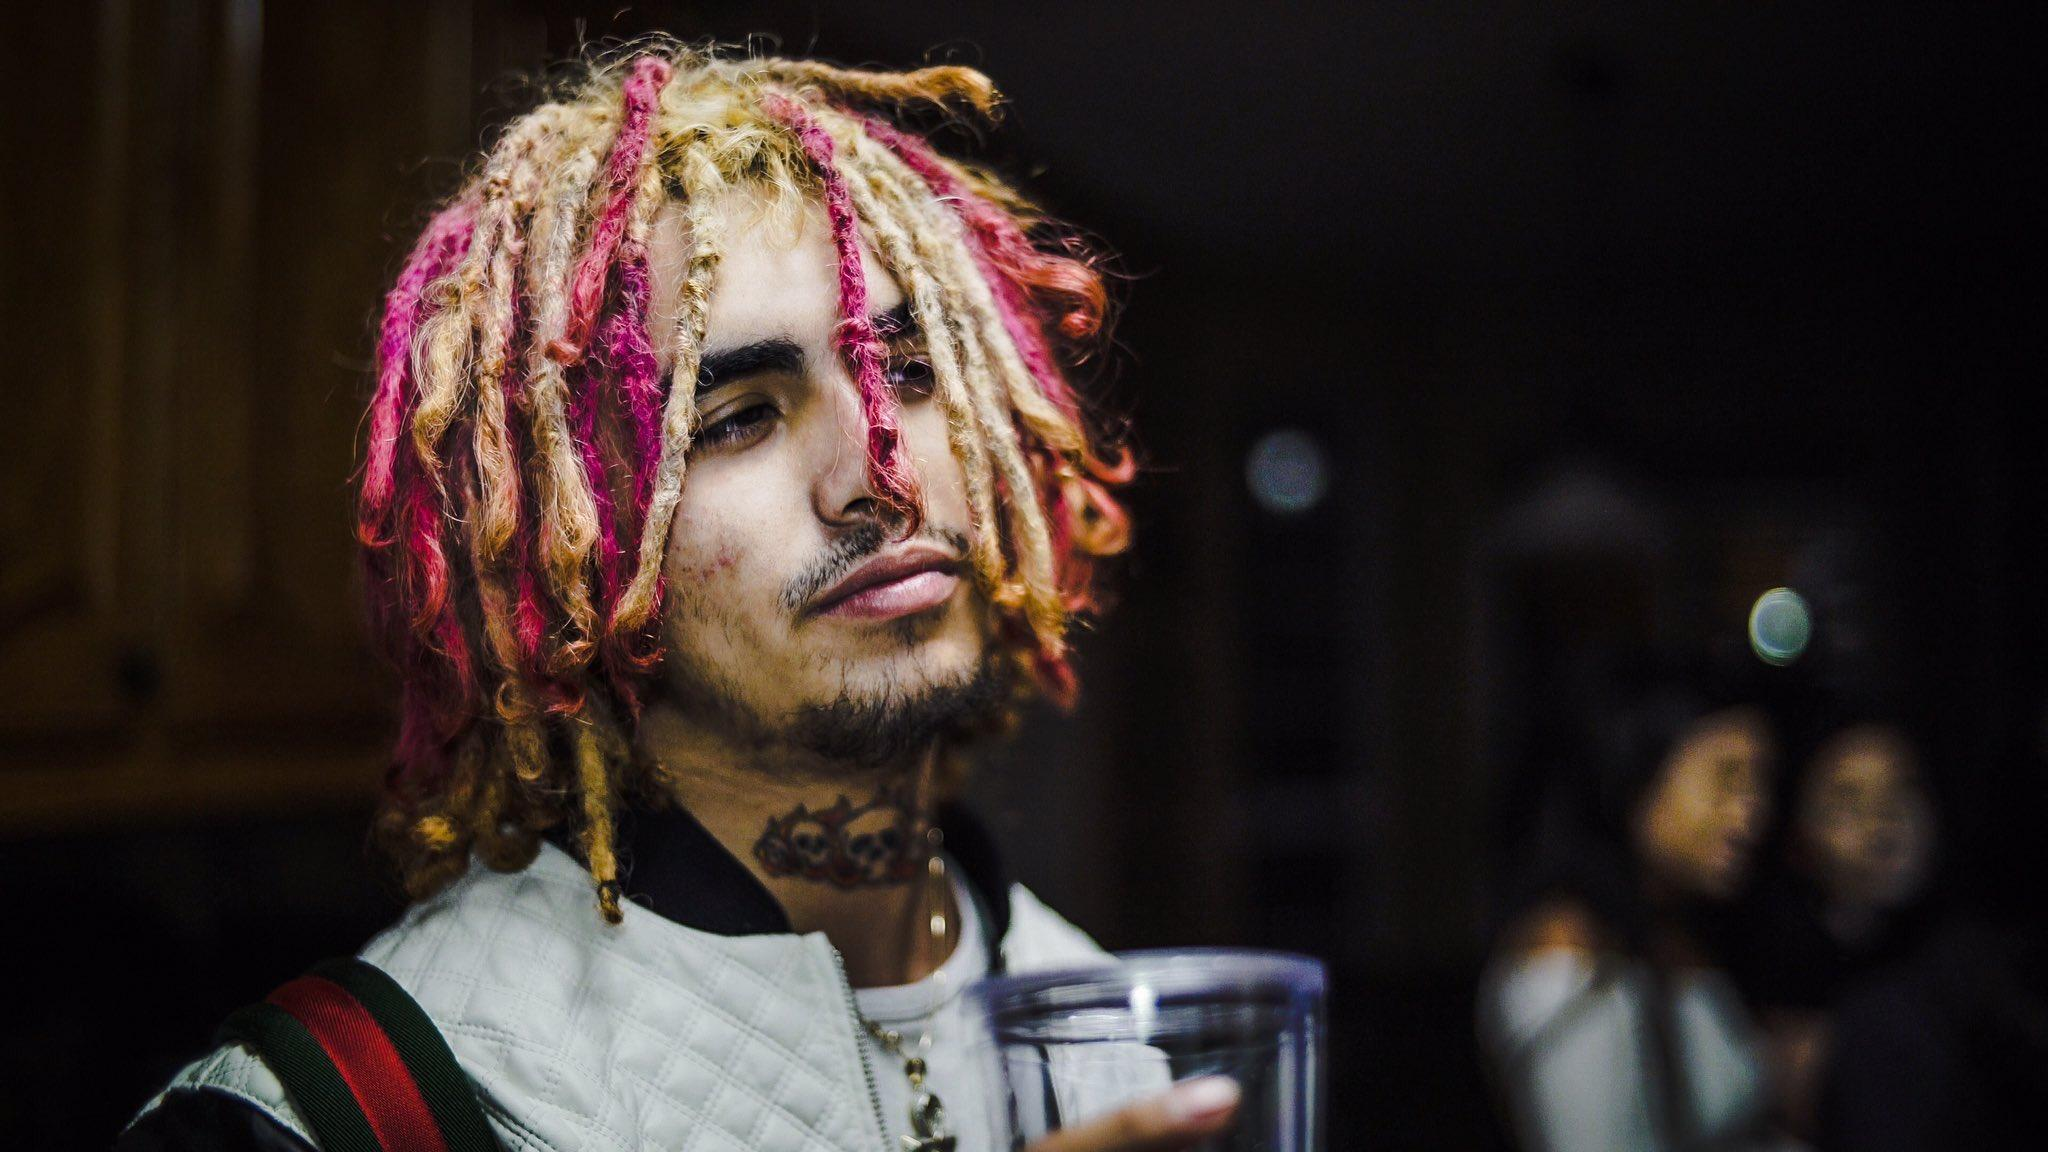 Free download Lil Peep Wallpapers Dreads Lil Pump 520229 HD